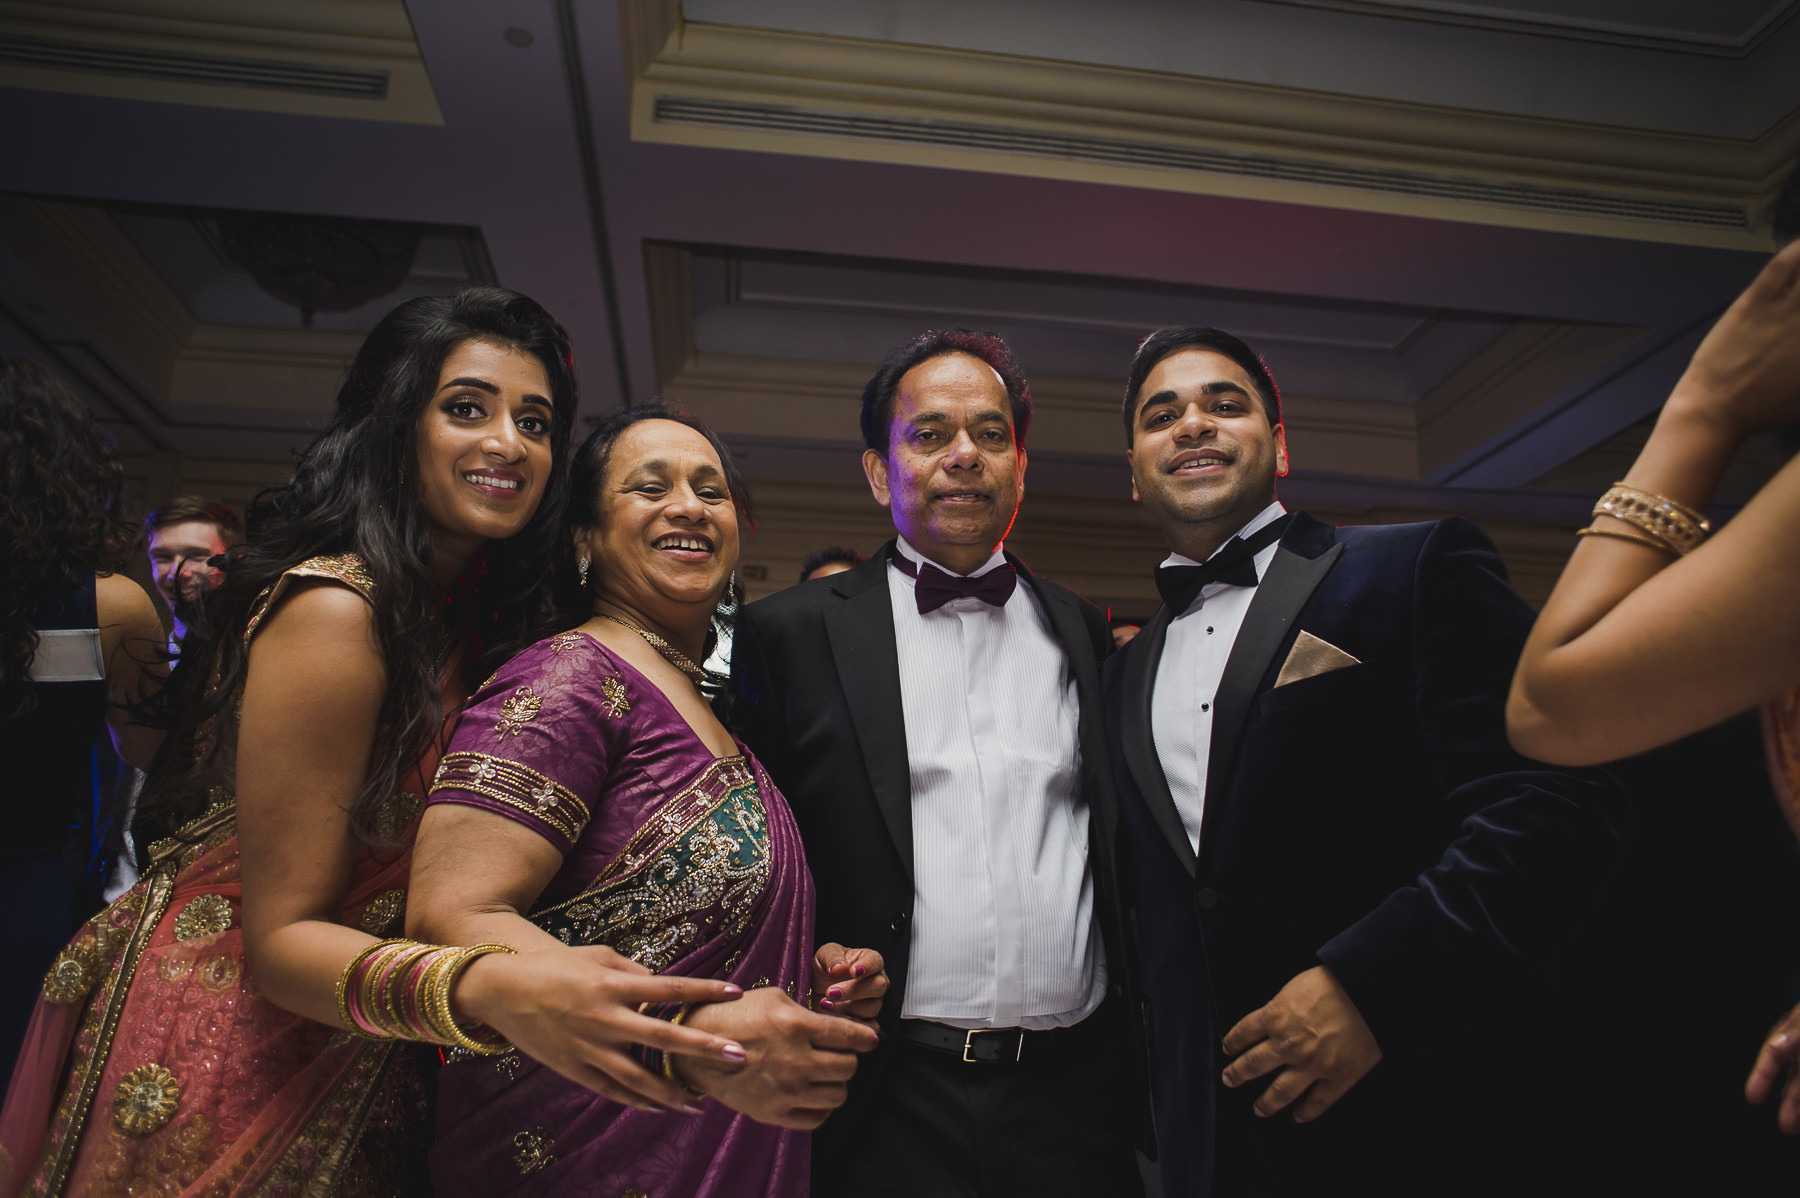 Mayfair Wedding Photography Family photo